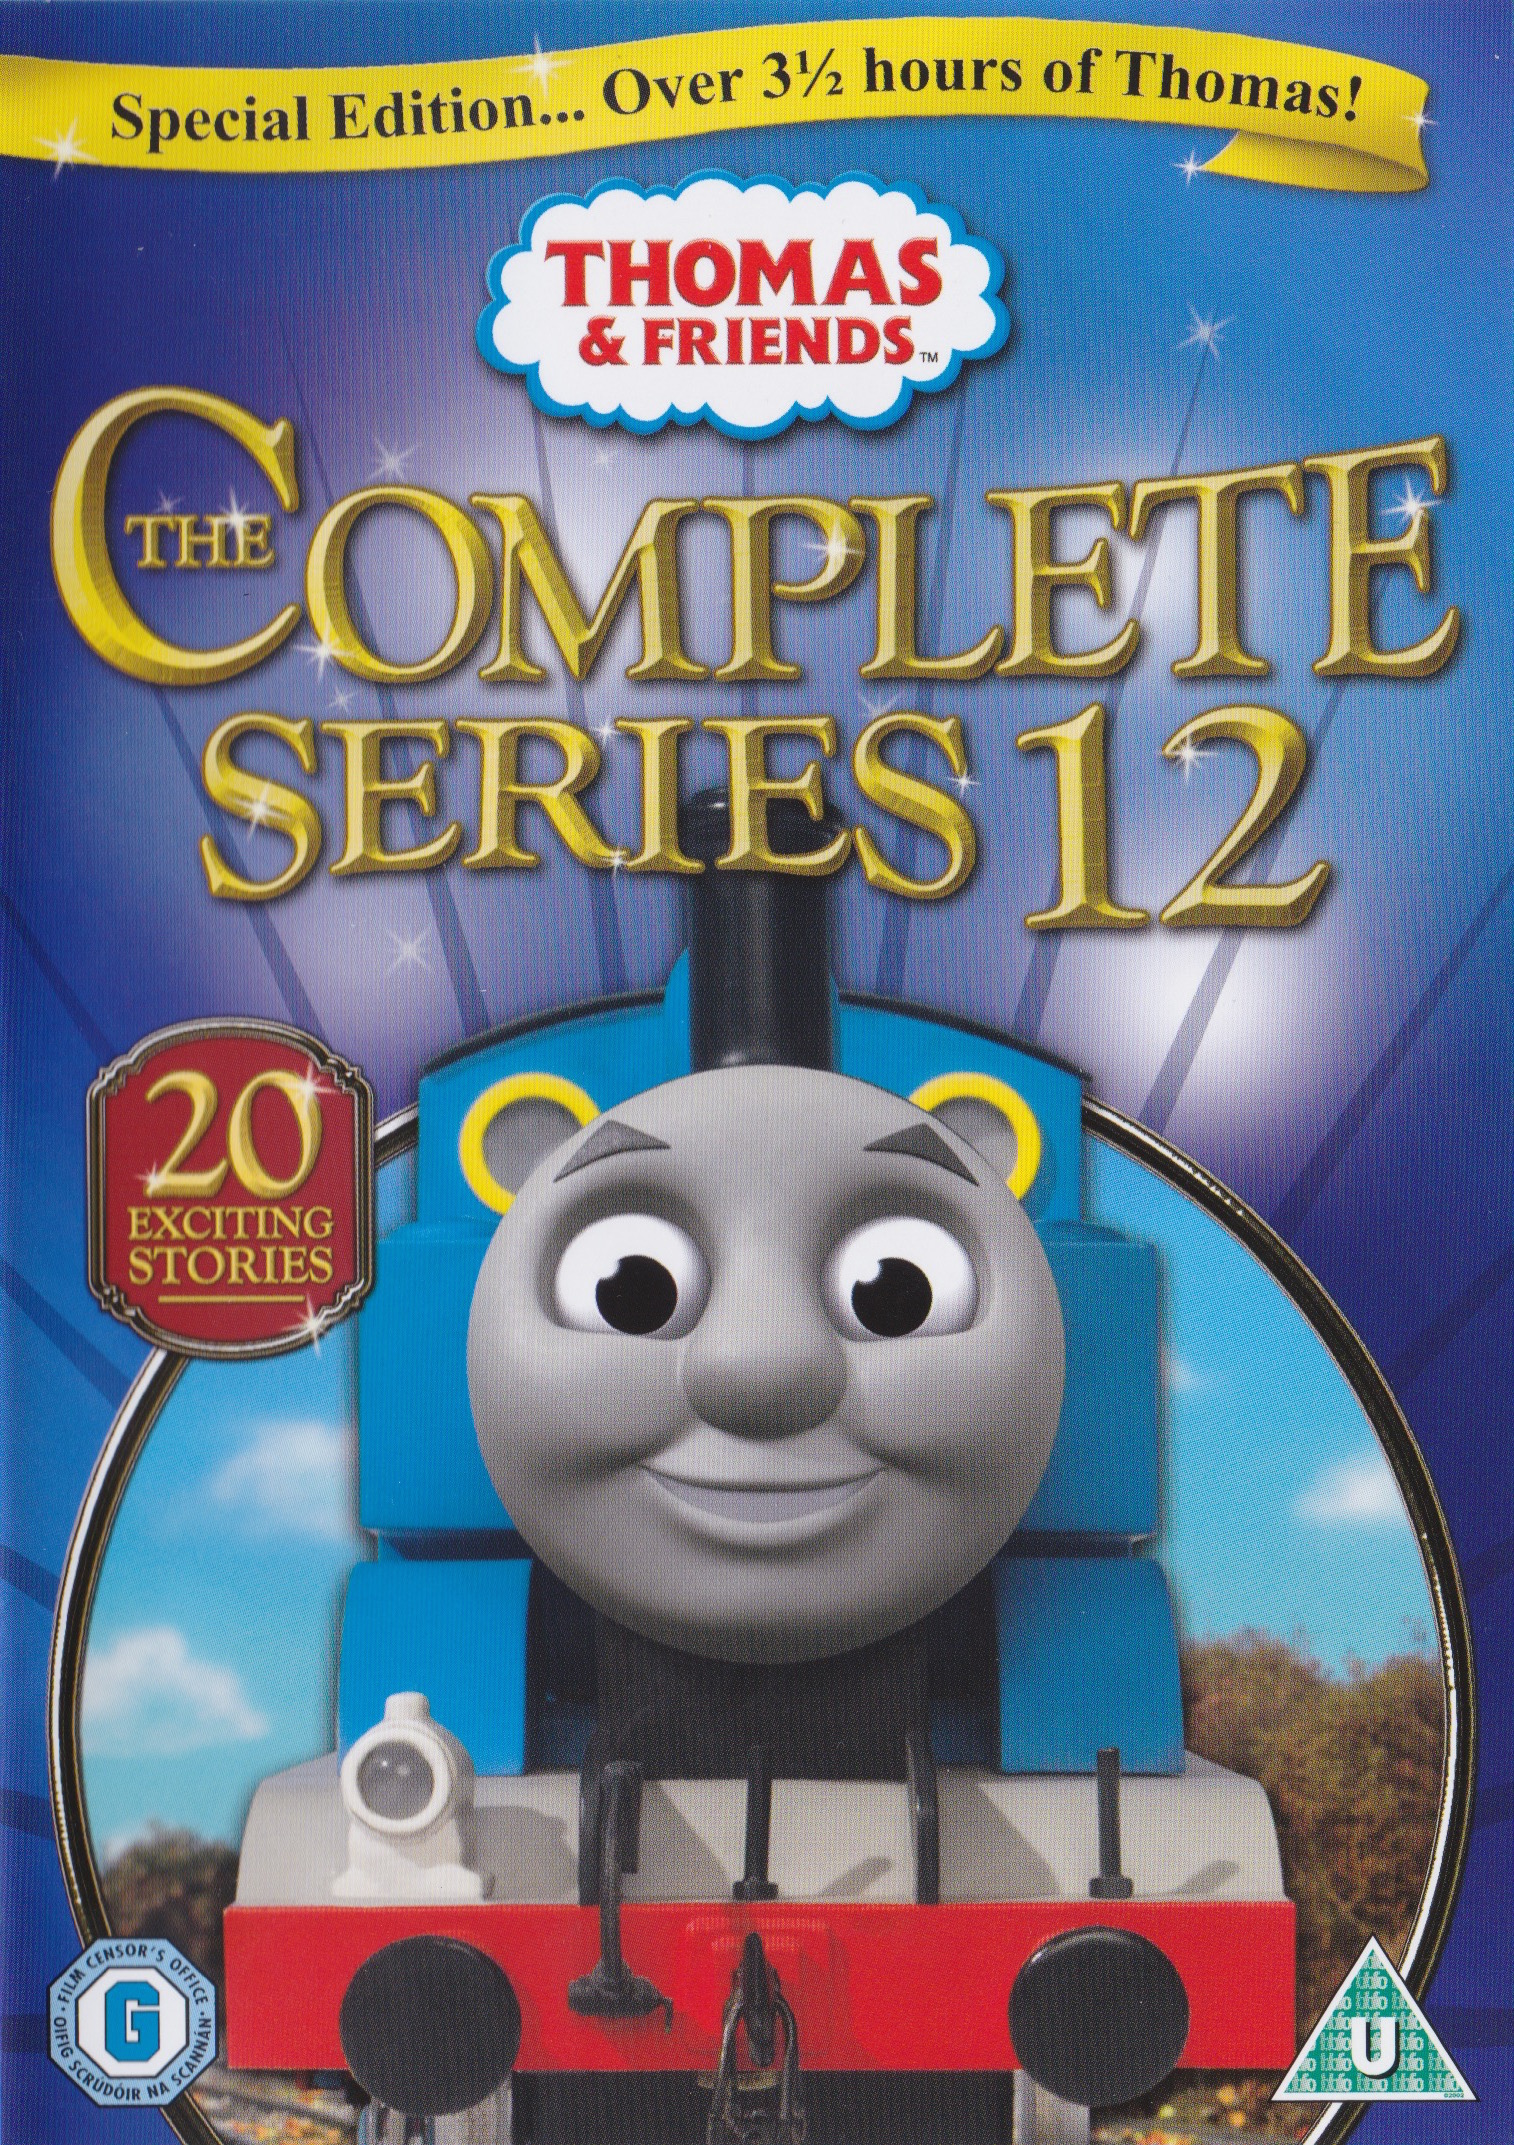 The Complete Series 12